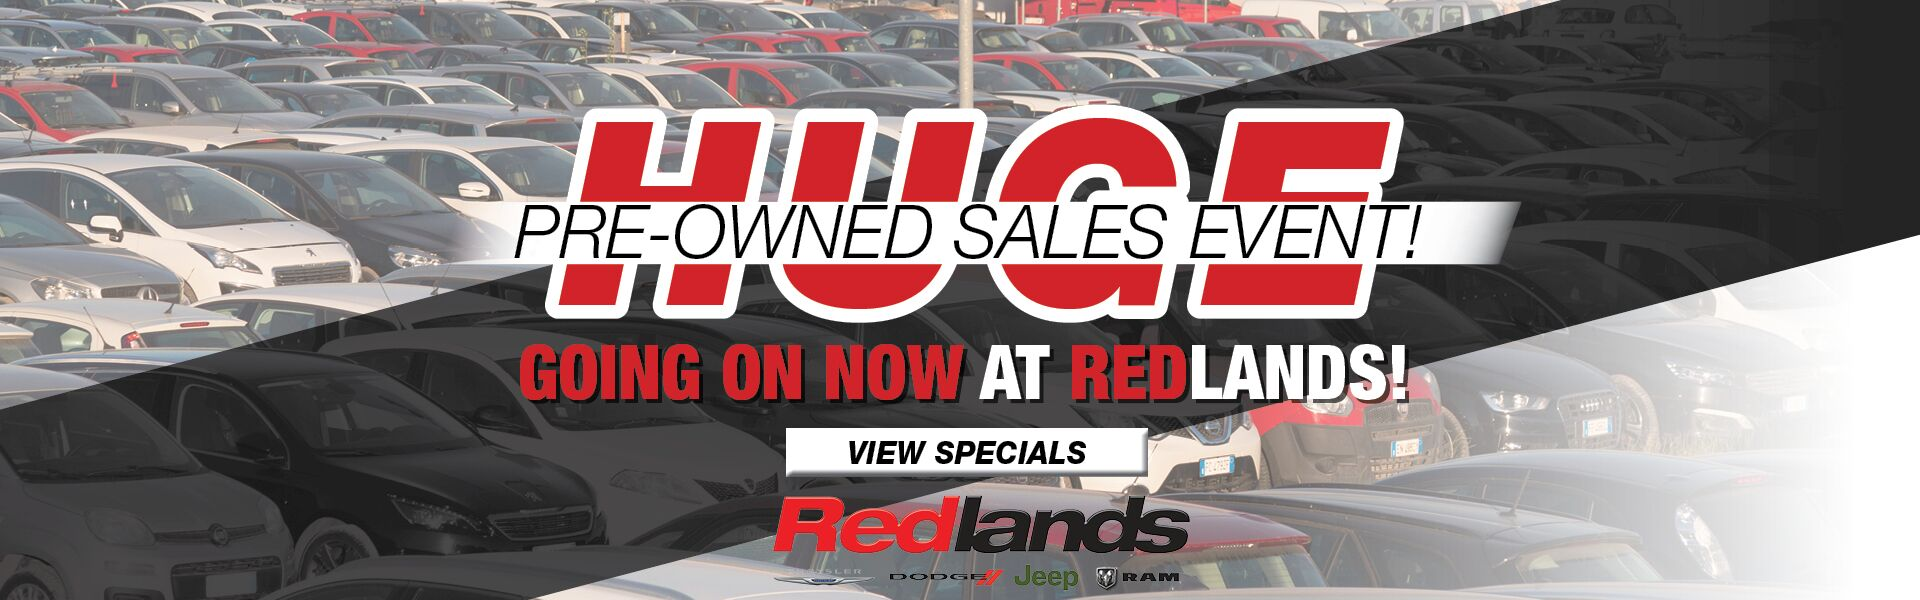 Huge Pre-Owned Sales Event